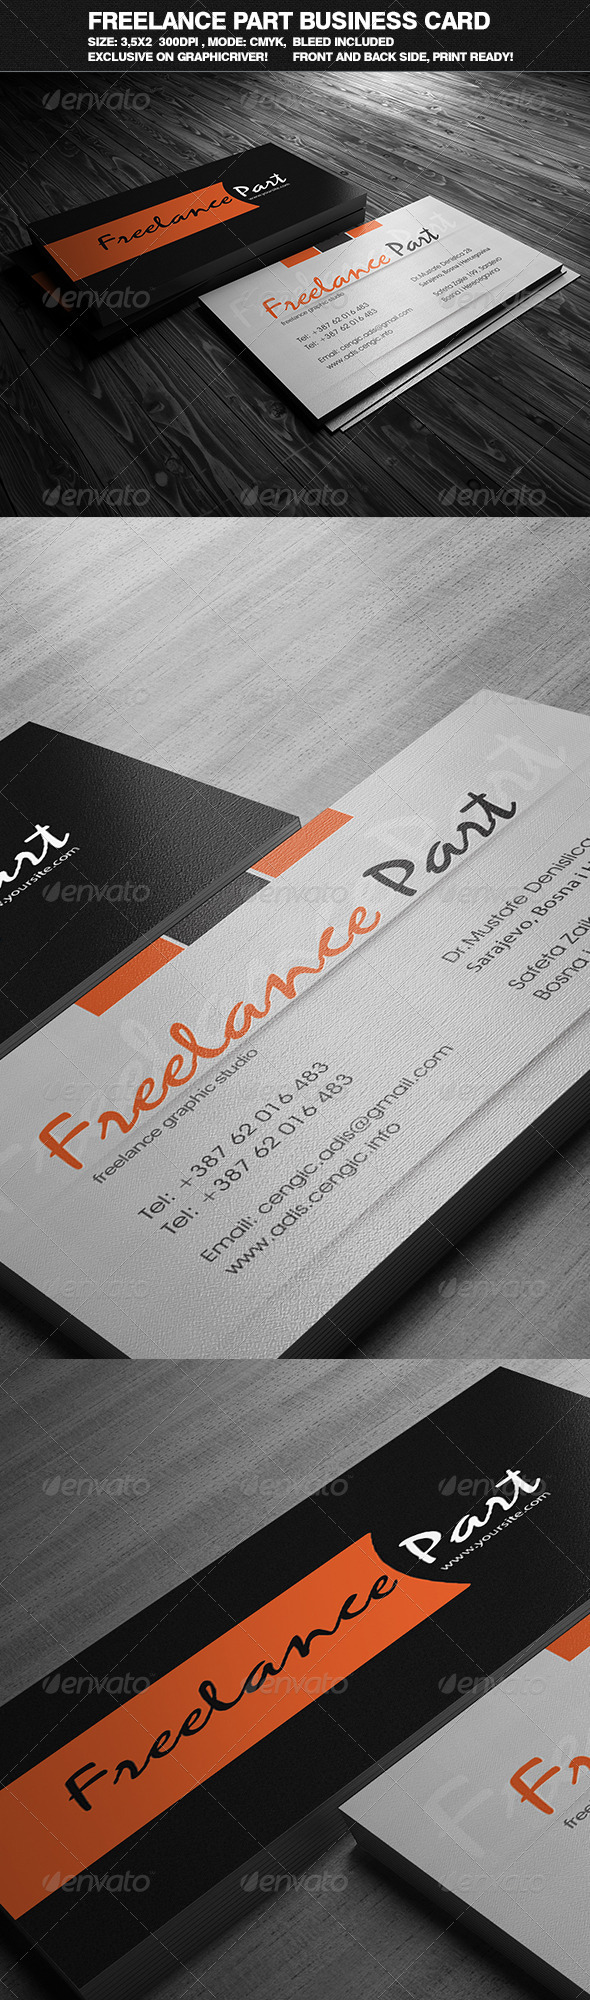 Freelance Part Business Card - Corporate Business Cards